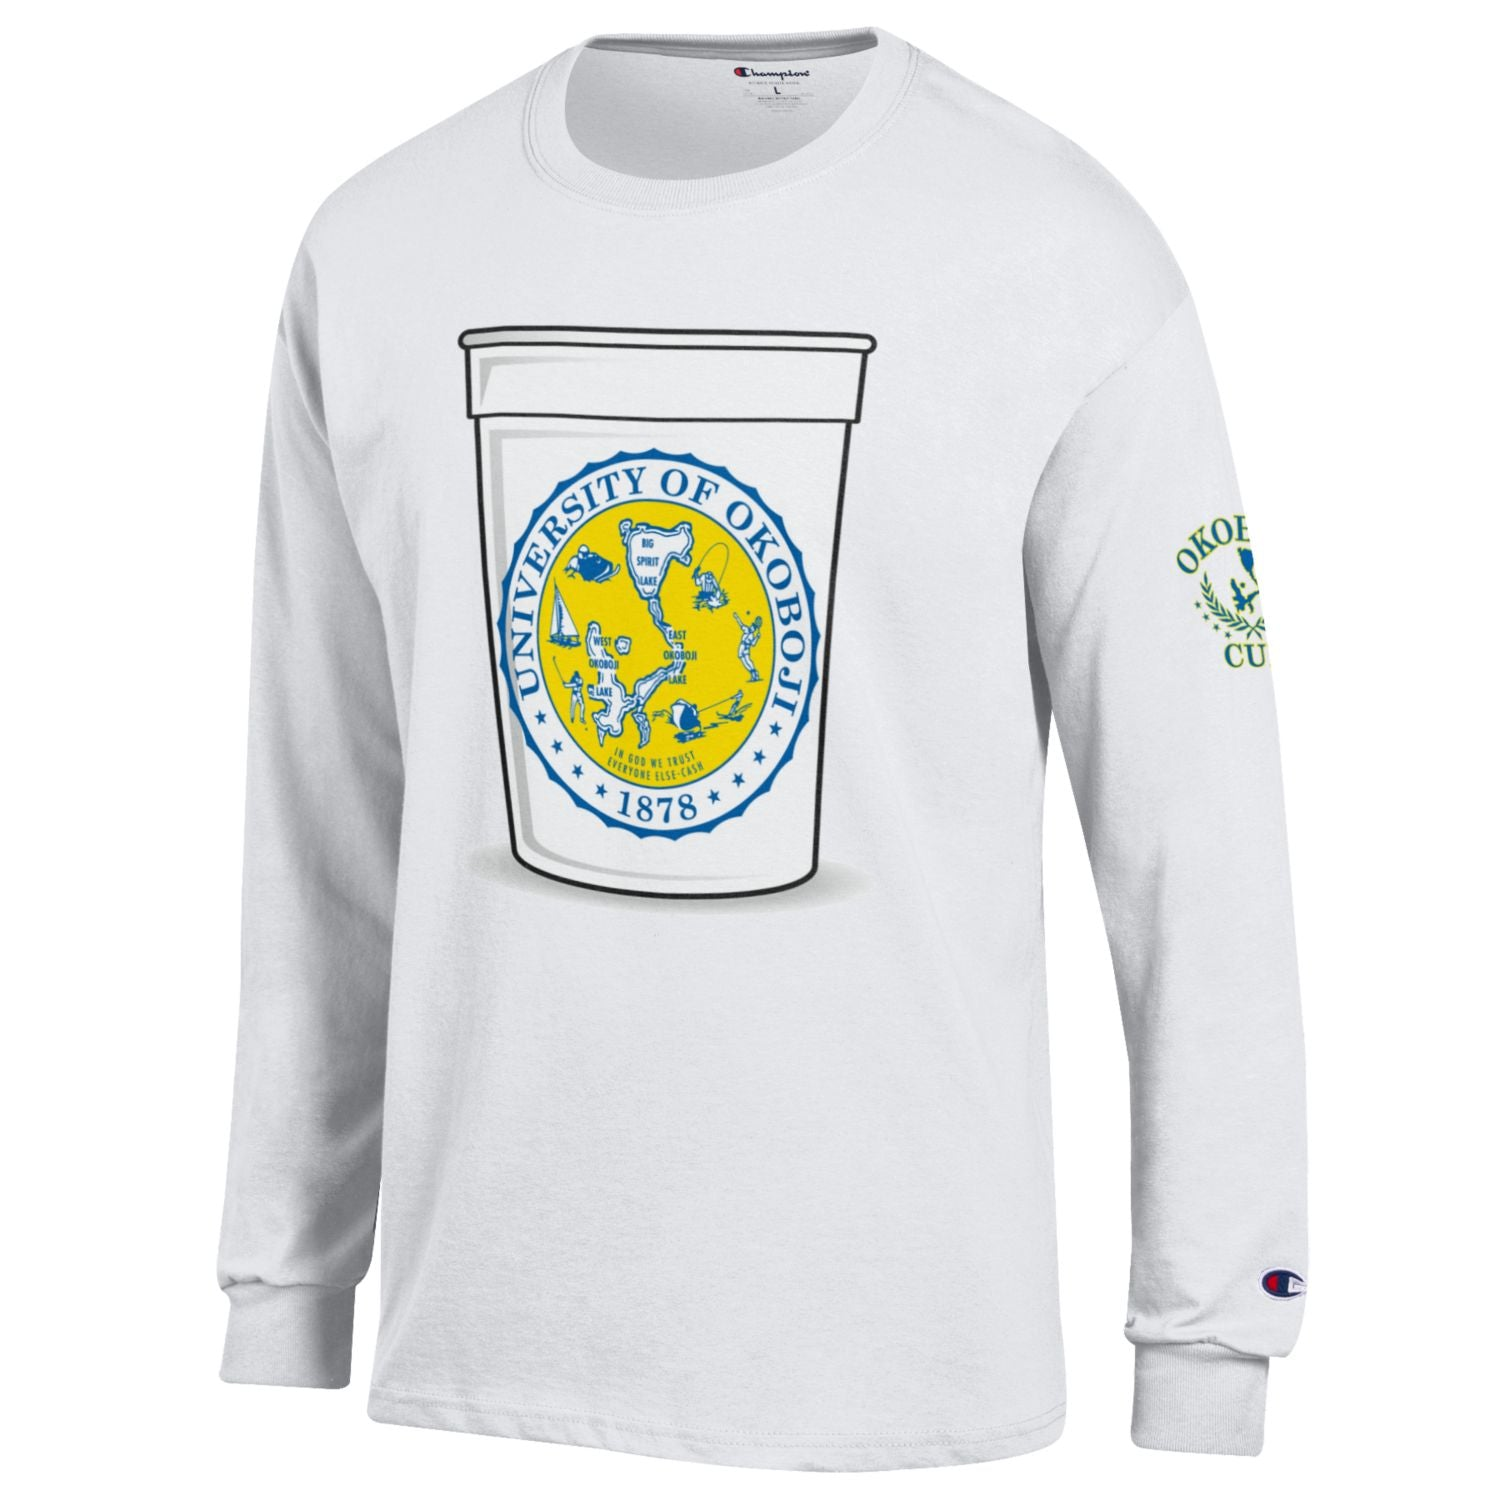 The Okoboji Cup Long-Sleeve Tee